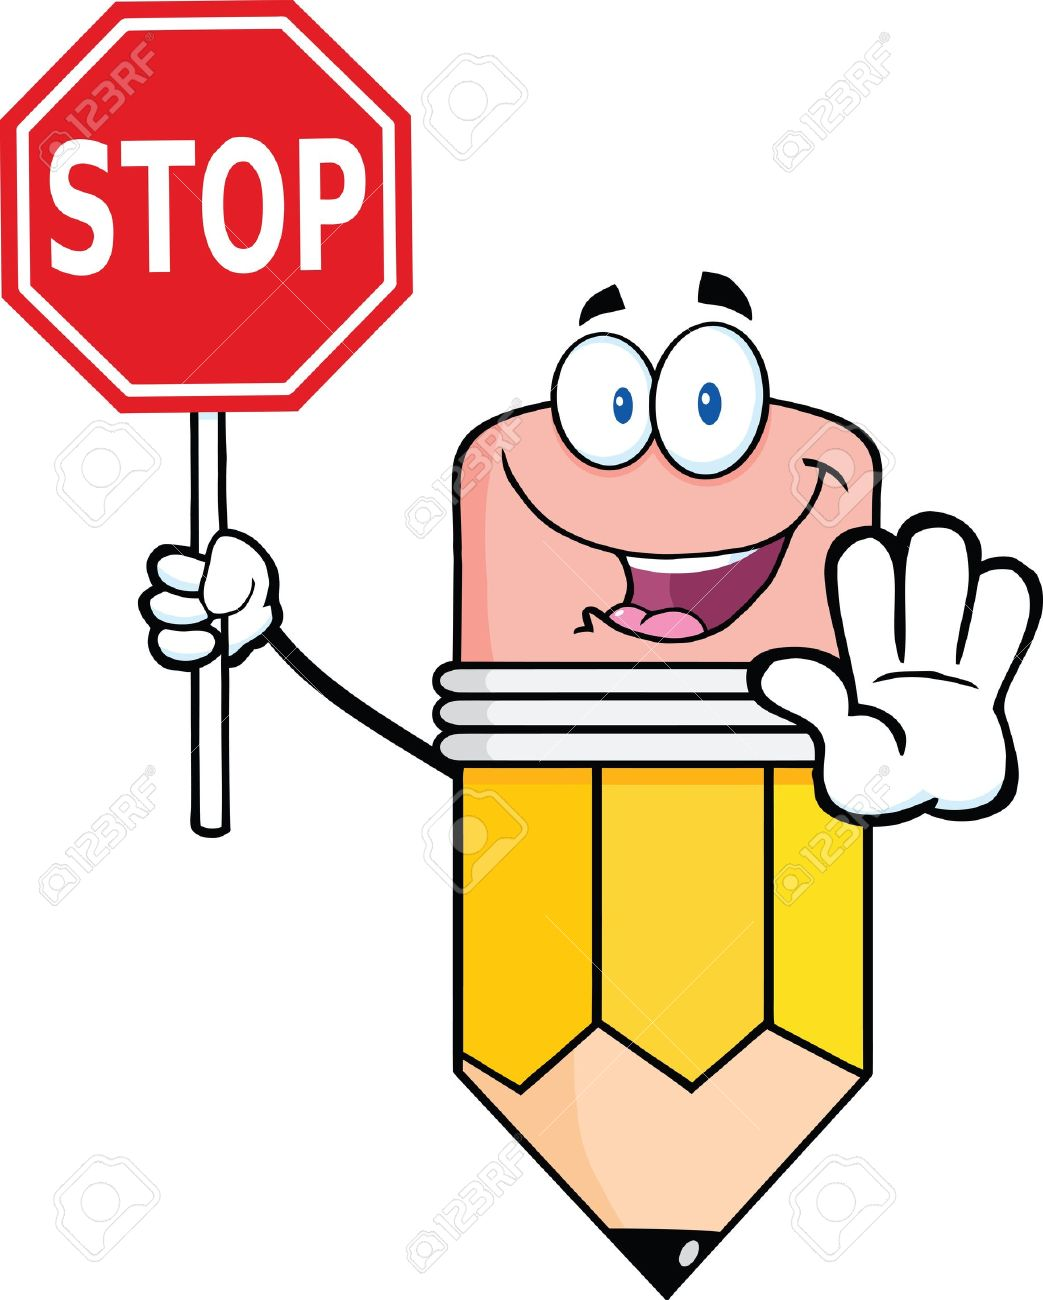 pencil cartoon mascot character holding a stop sign royalty free rh 123rf com stop sign cartoon black and white bus stop sign cartoon